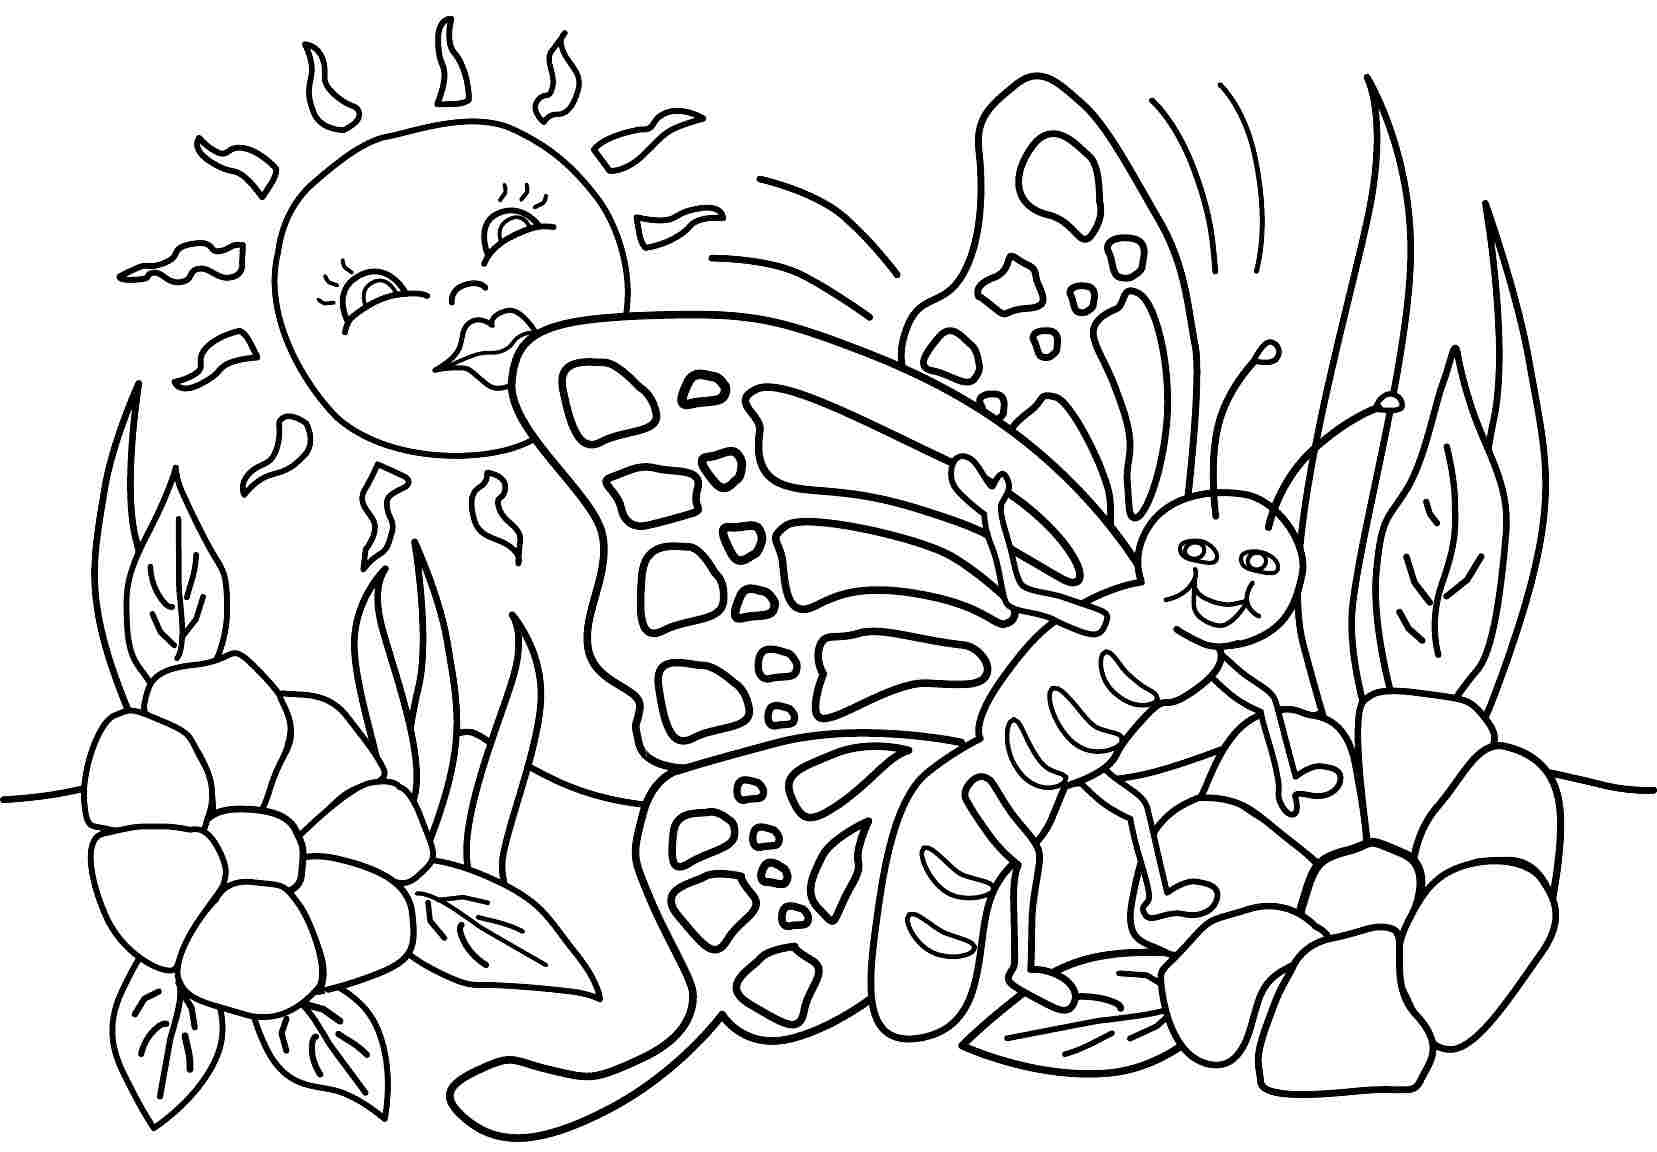 spring coloring pages for kids 5 best images of spring season coloring pages printable for pages coloring kids spring